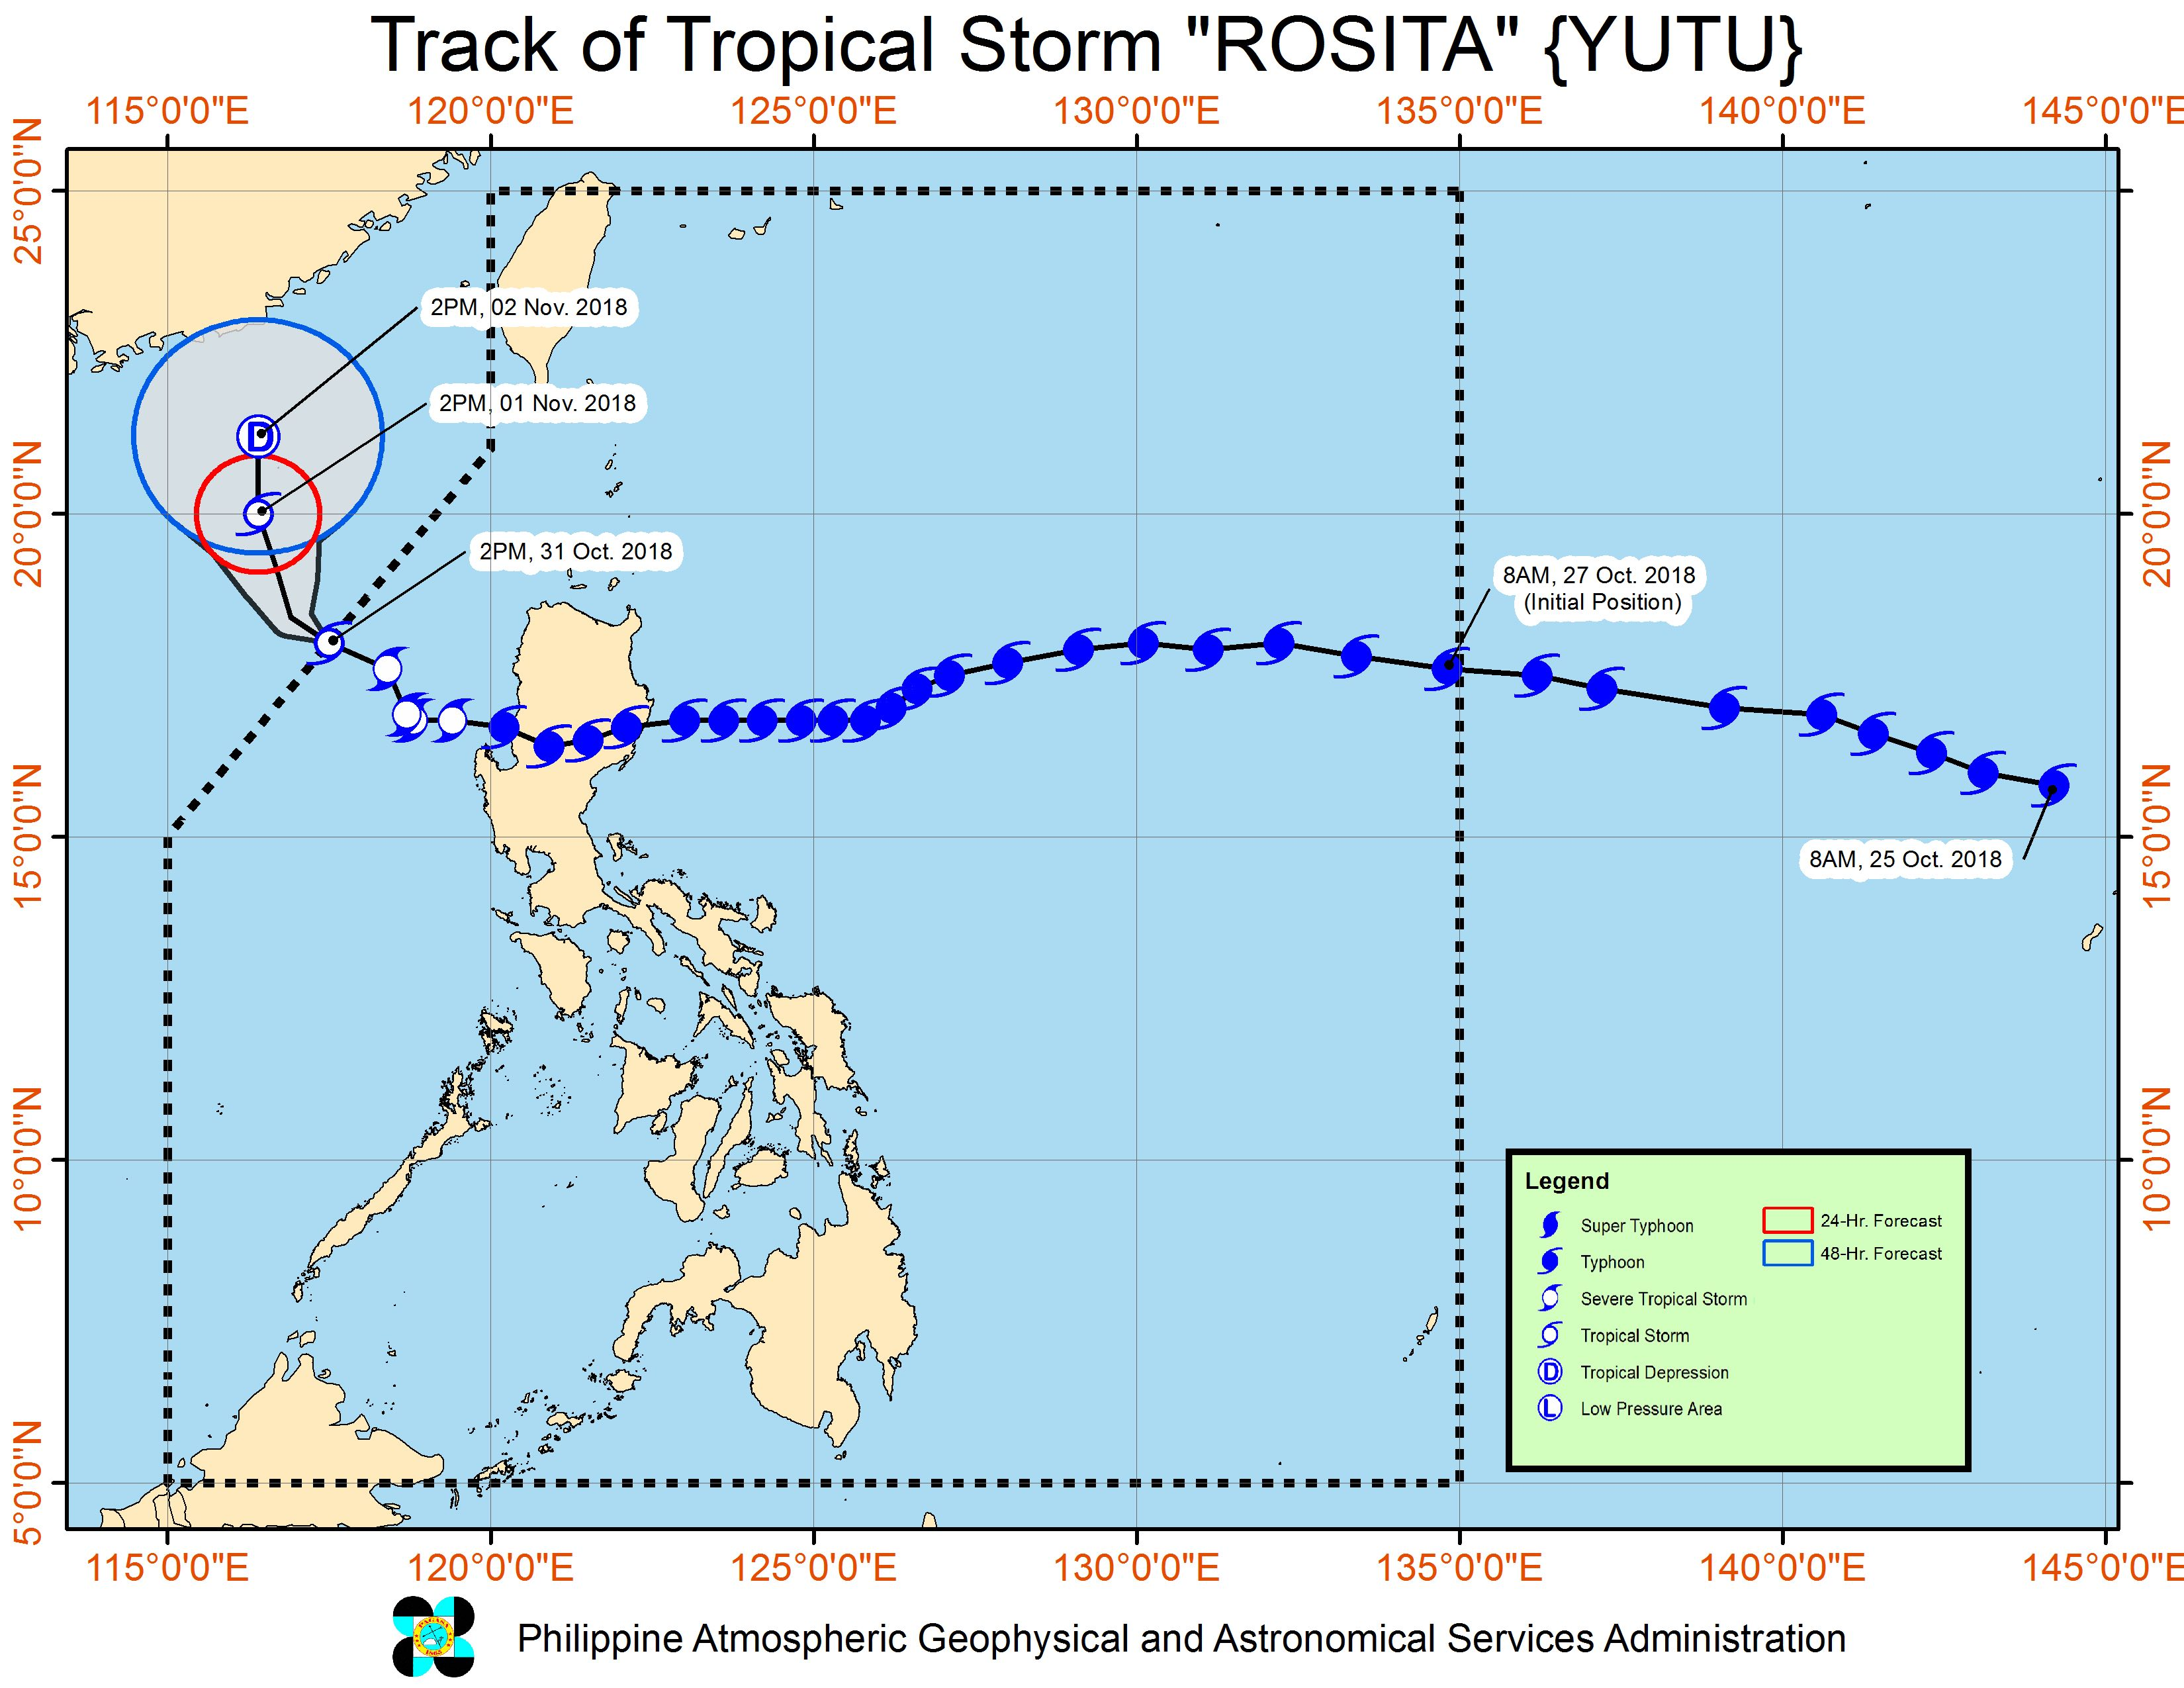 Forecast track of Tropical Storm Rosita (Yutu) as of October 31, 2018, 5 pm. Image from PAGASA